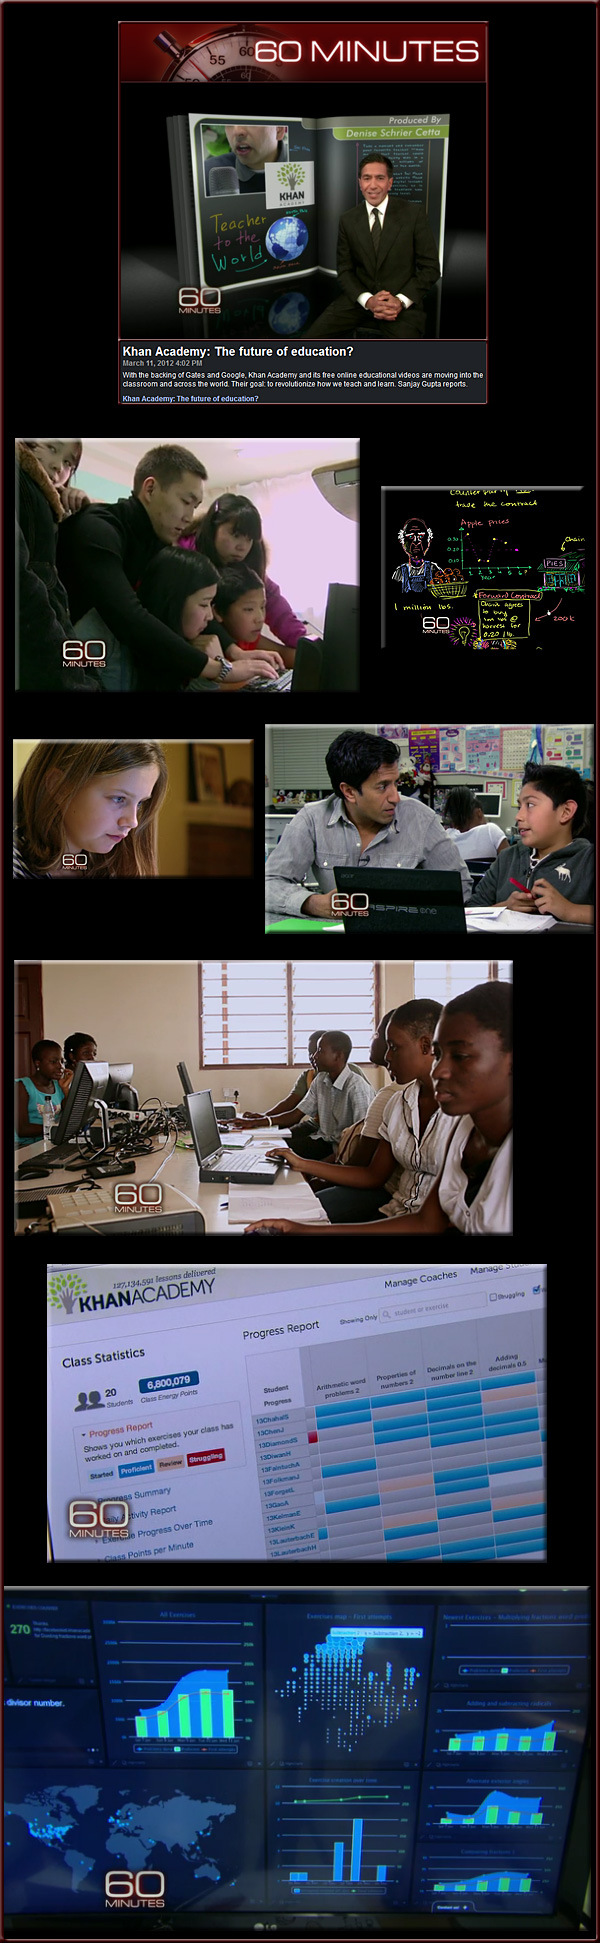 Khan Academy: The future of education?